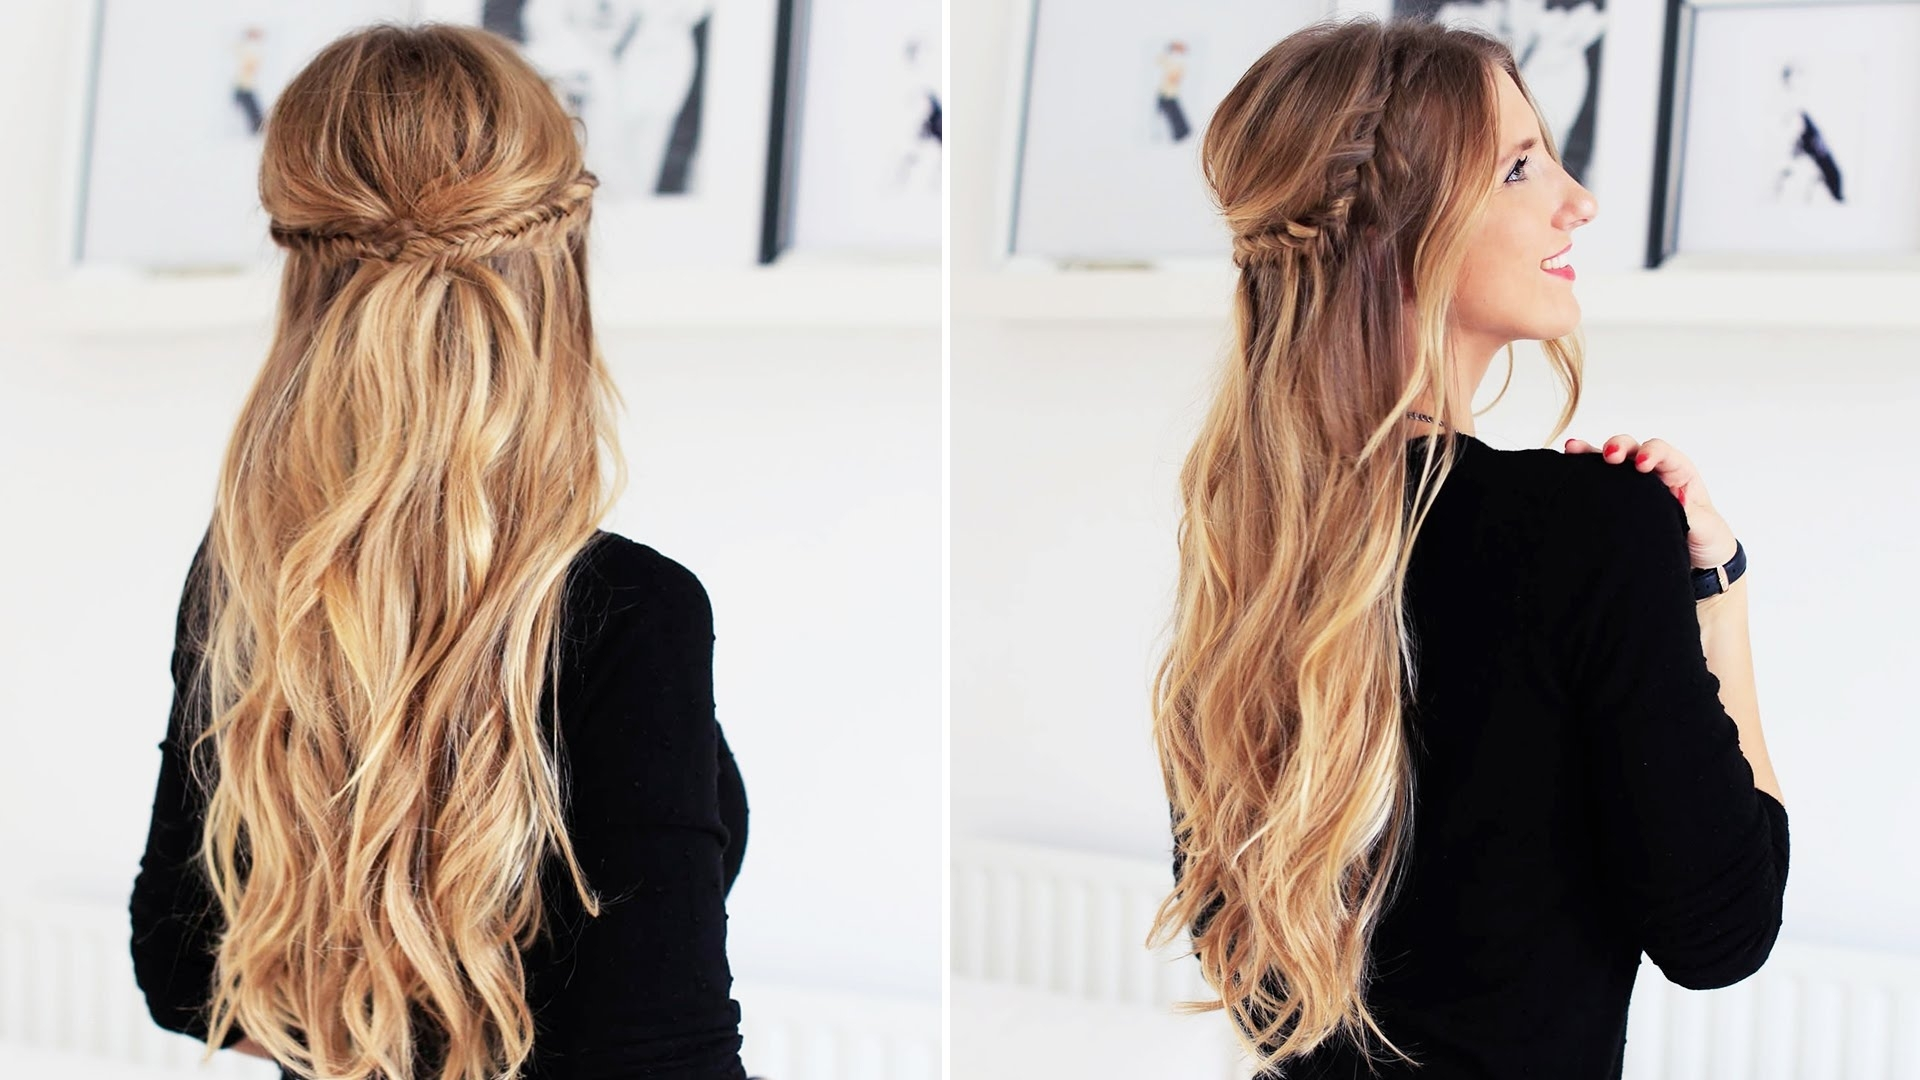 Current Messy Half Ponytail Hairstyles For Fishtail Braid Half  Updo For Short, Medium, And Long Hair (View 7 of 20)